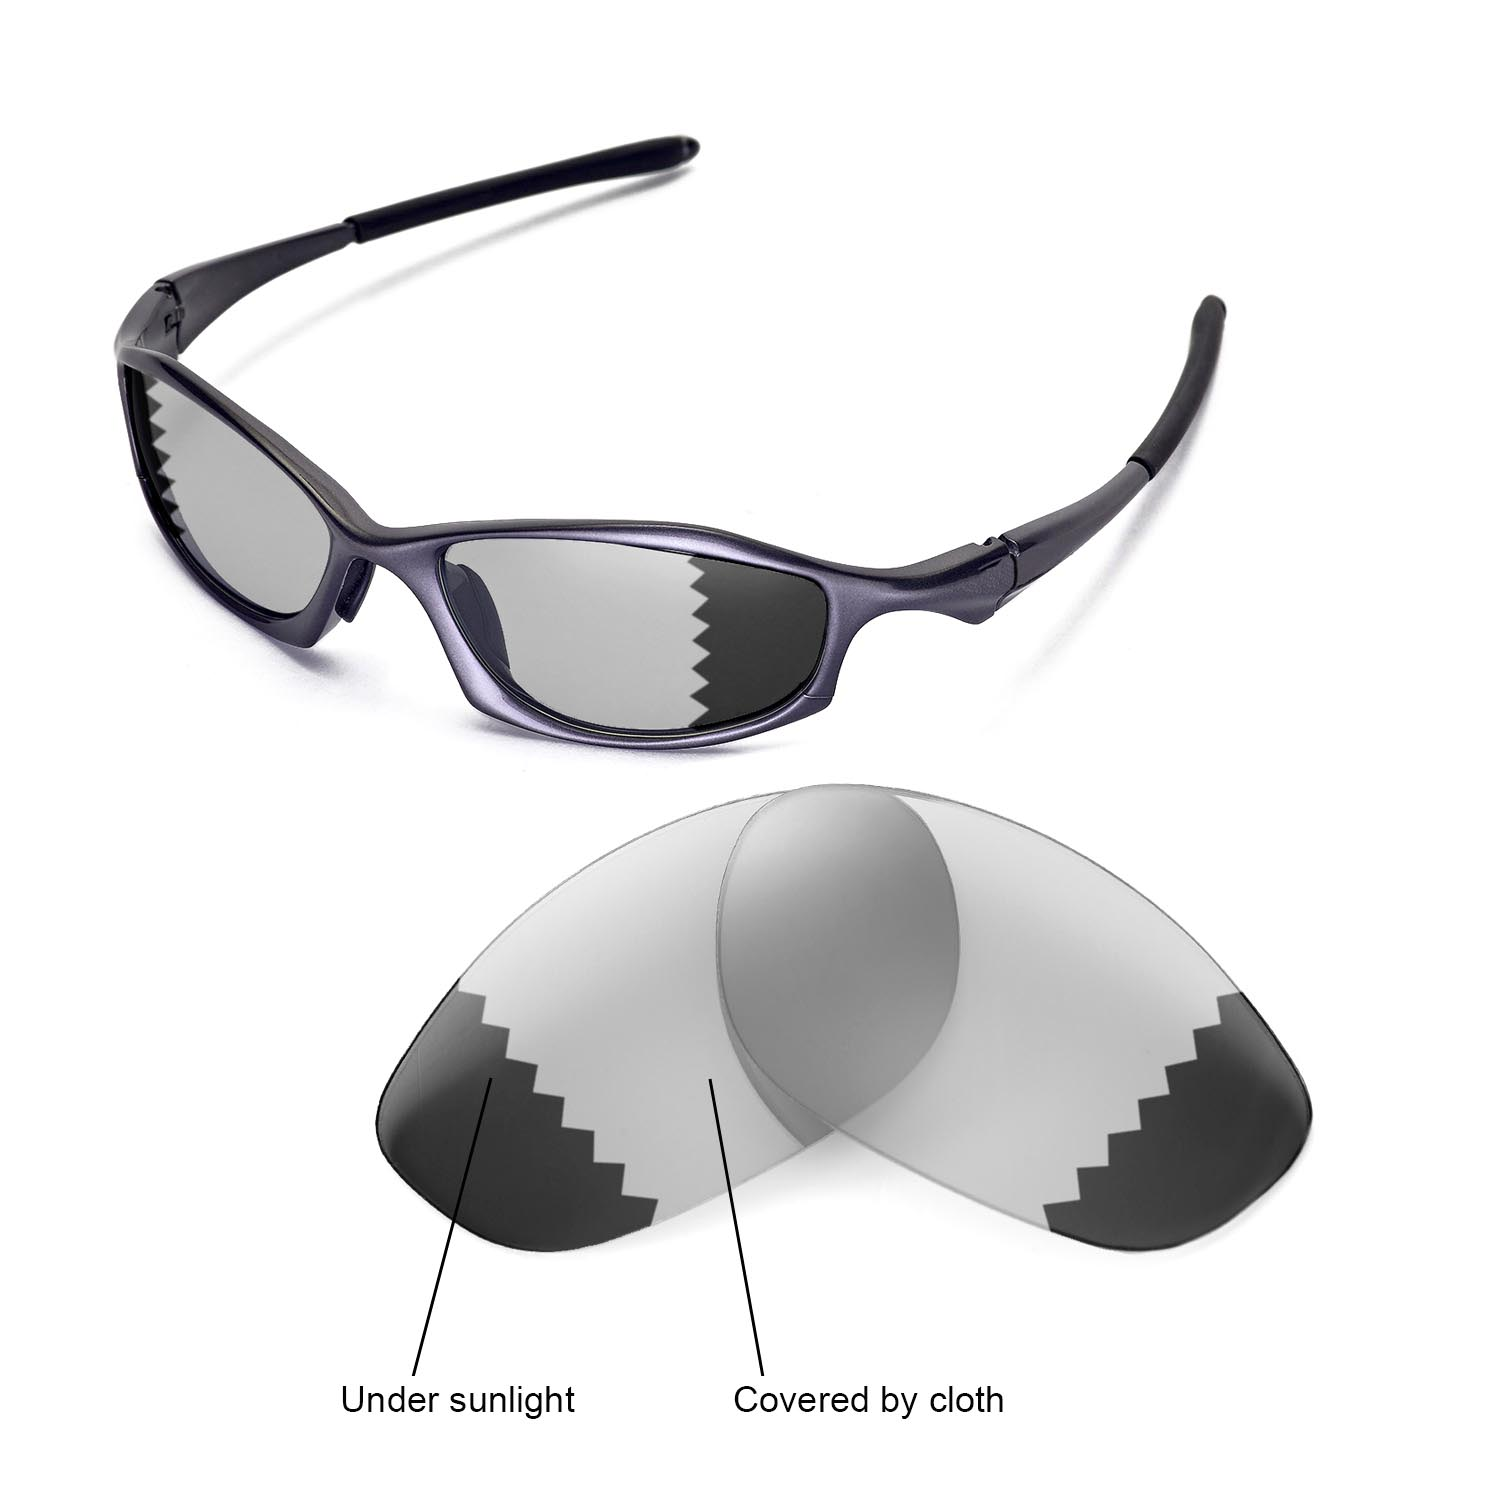 99c2a574f2e Details about New Walleva Polarized Transition Photochromic Lenses For  Oakley Hatchet Wire